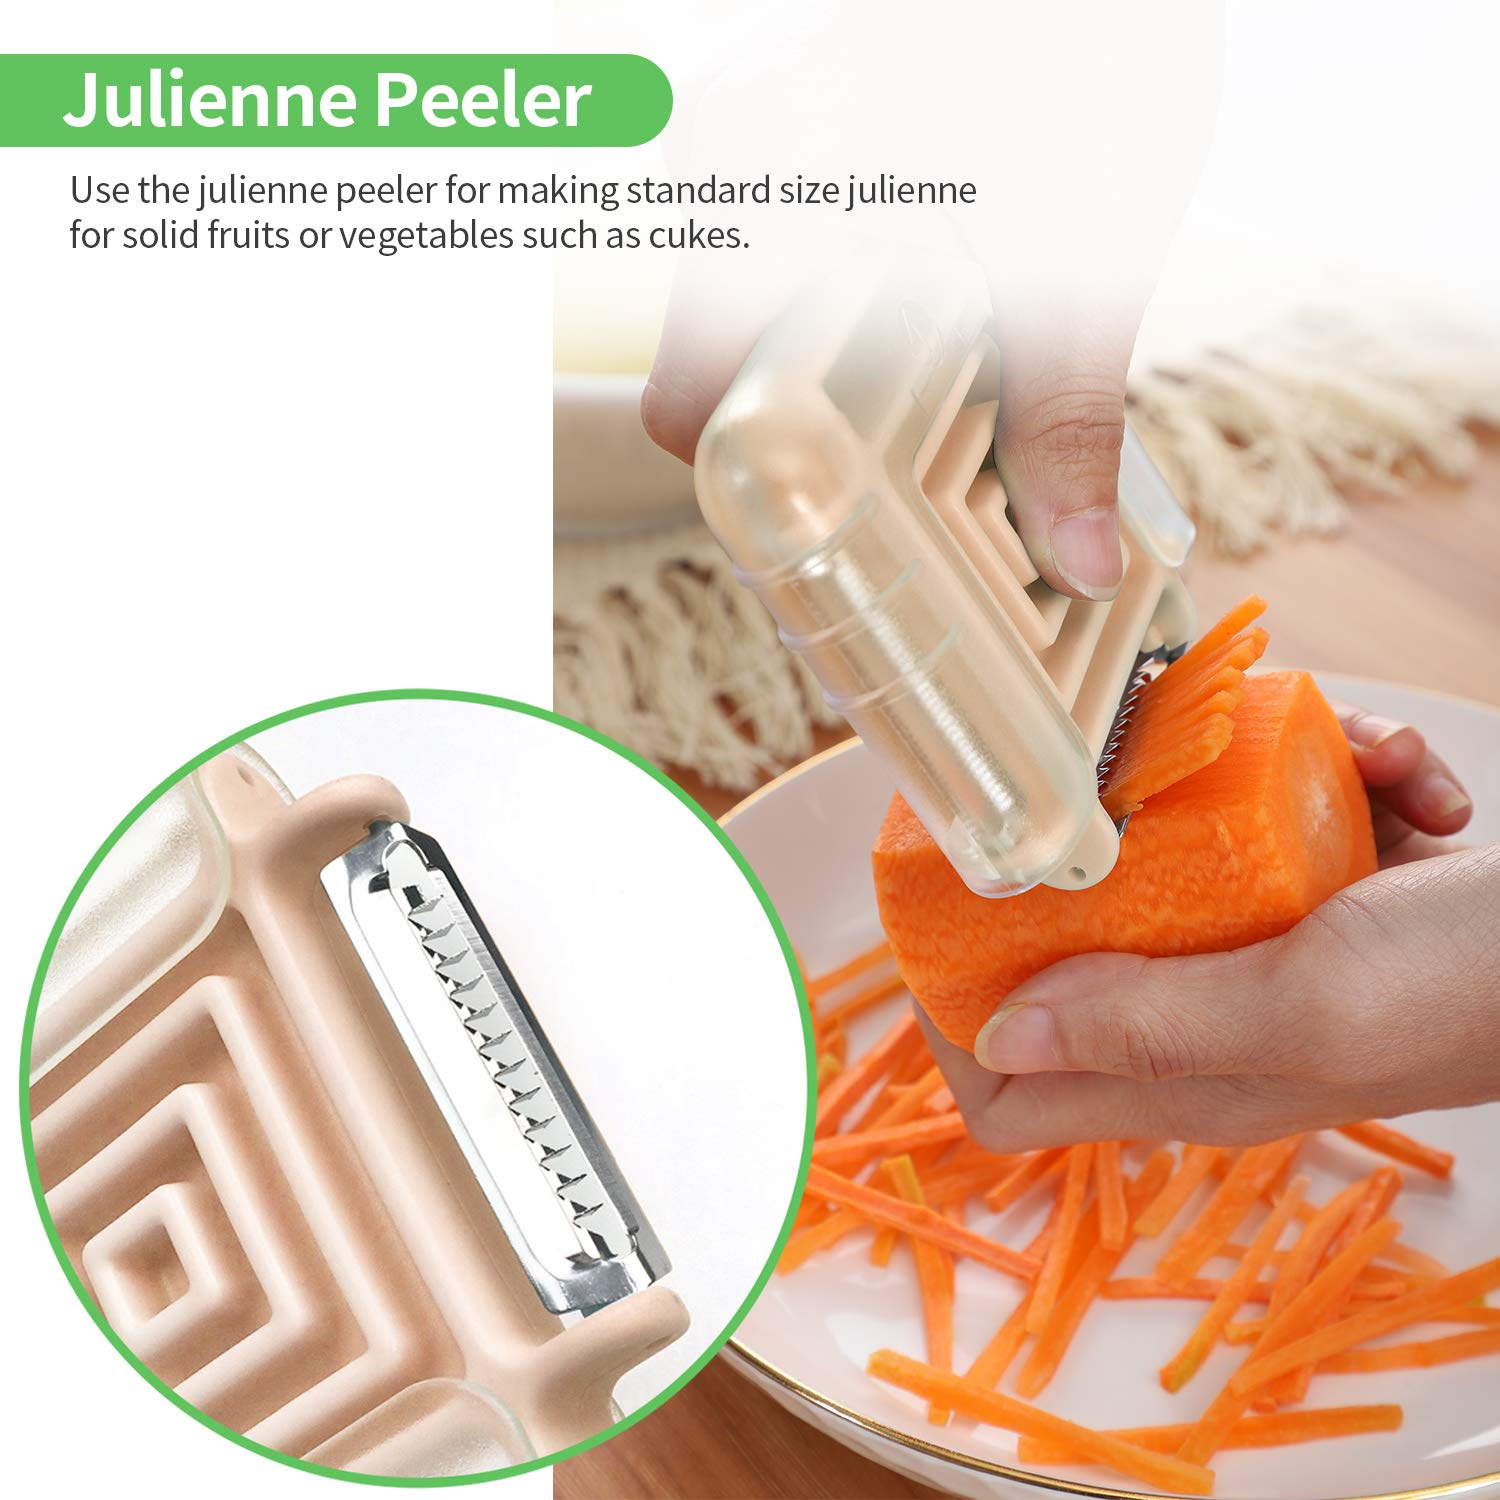 Seektop 3 in 1 Vegetable Peeler for Potato Tomato Carrot Zucchini Peelers with Swivel Julienne Serrated Stainless Steel Blades (Orange)